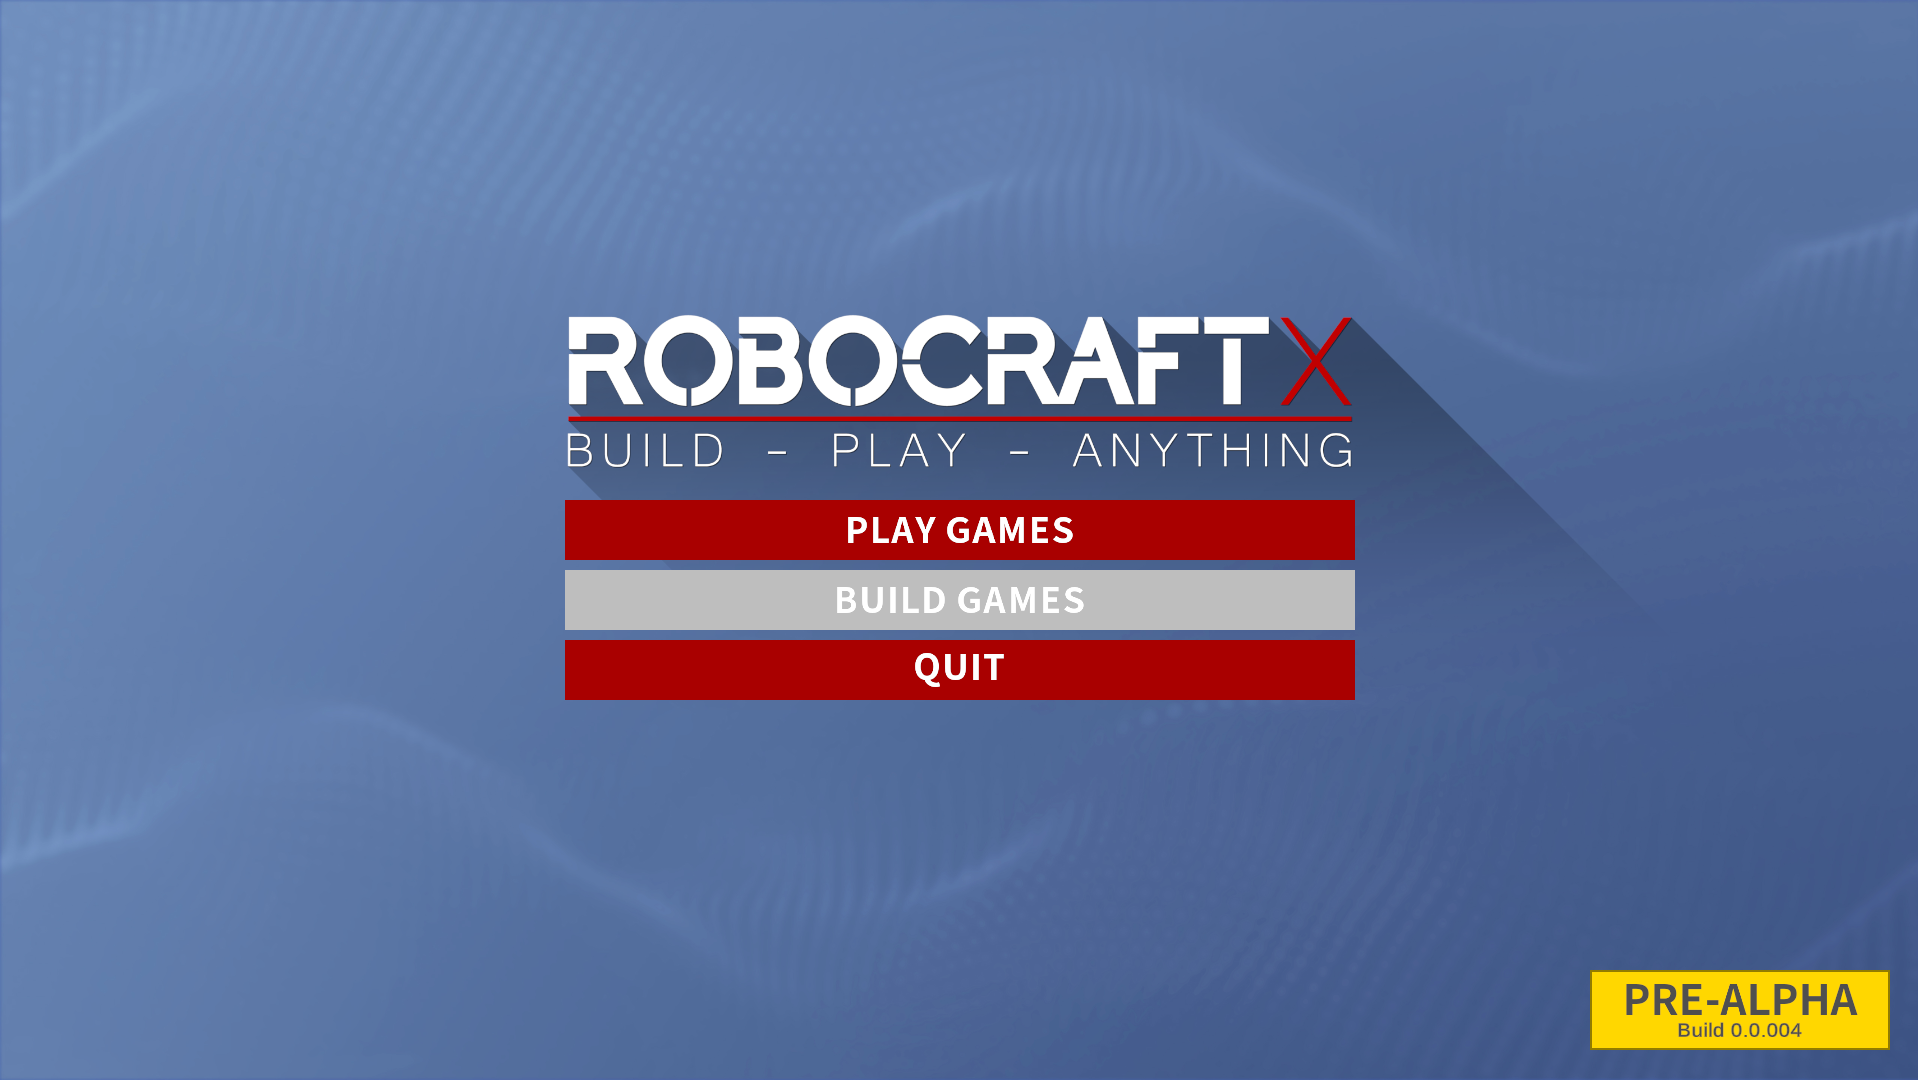 RobocraftX :: Experiment 4 Out Now! Play Games, Build Games, Share